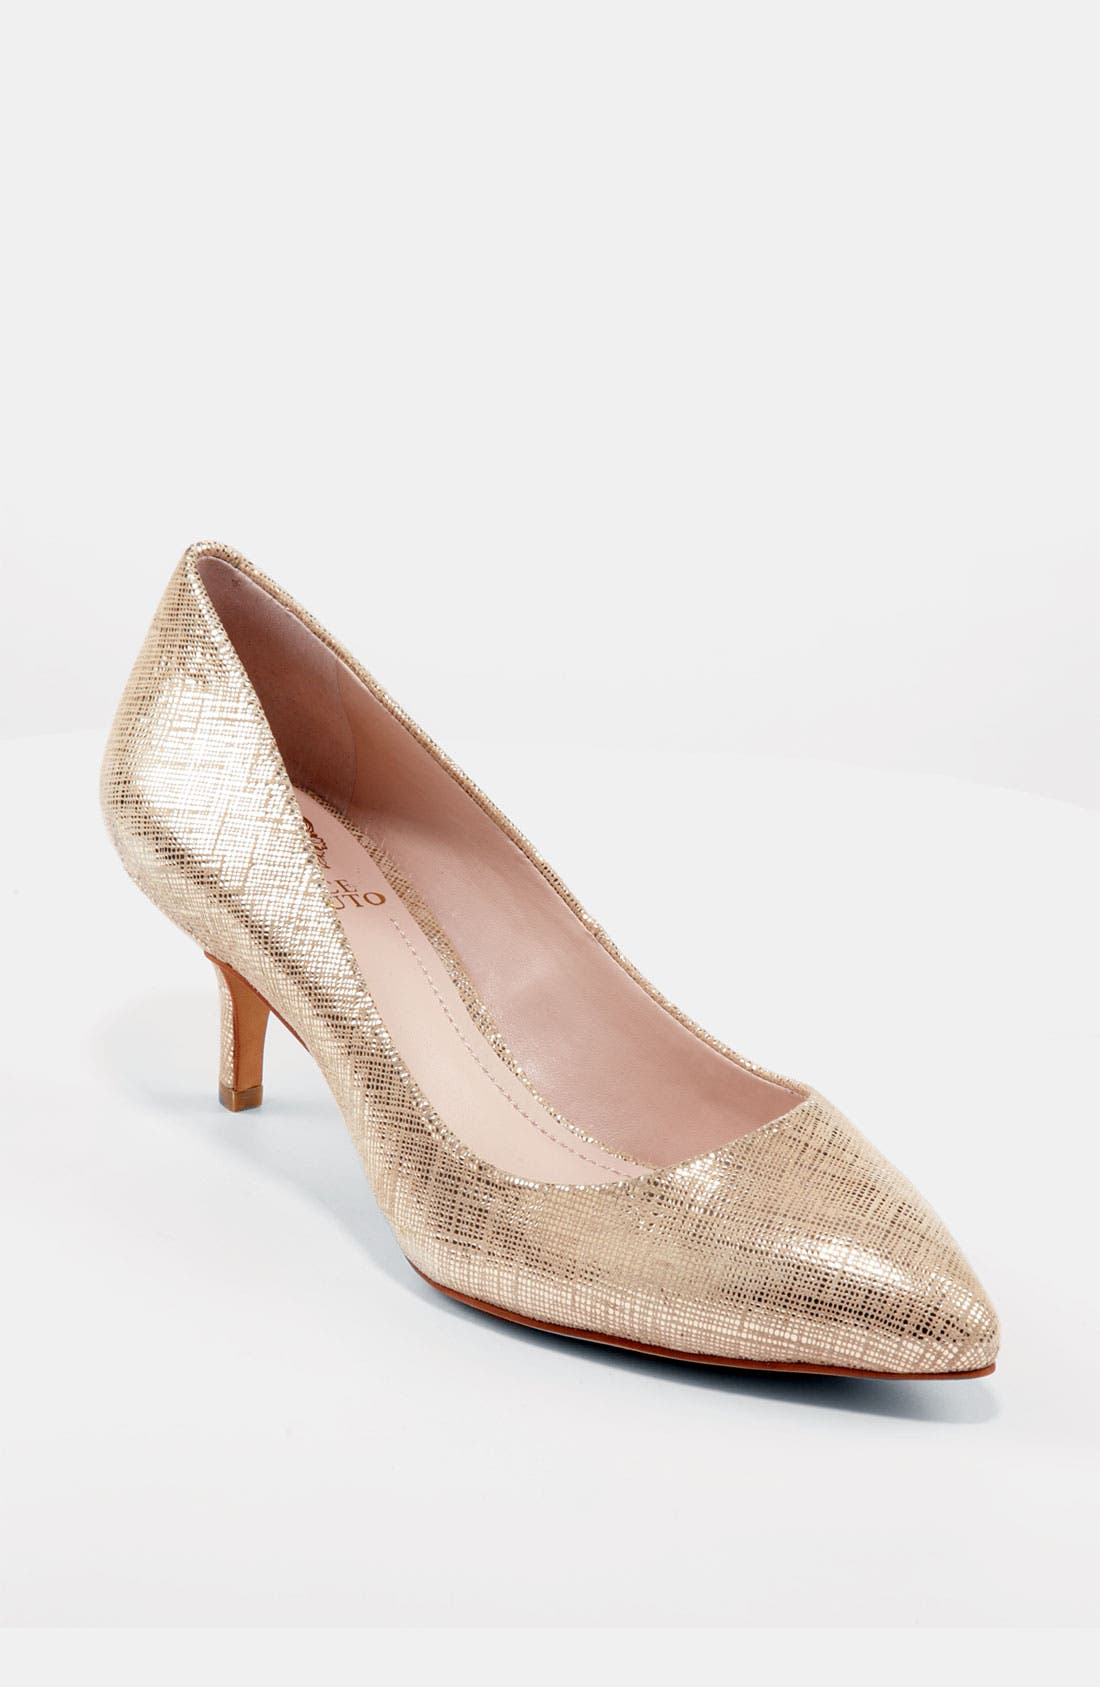 Alternate Image 1 Selected - Vince Camuto 'Goldie' Pump